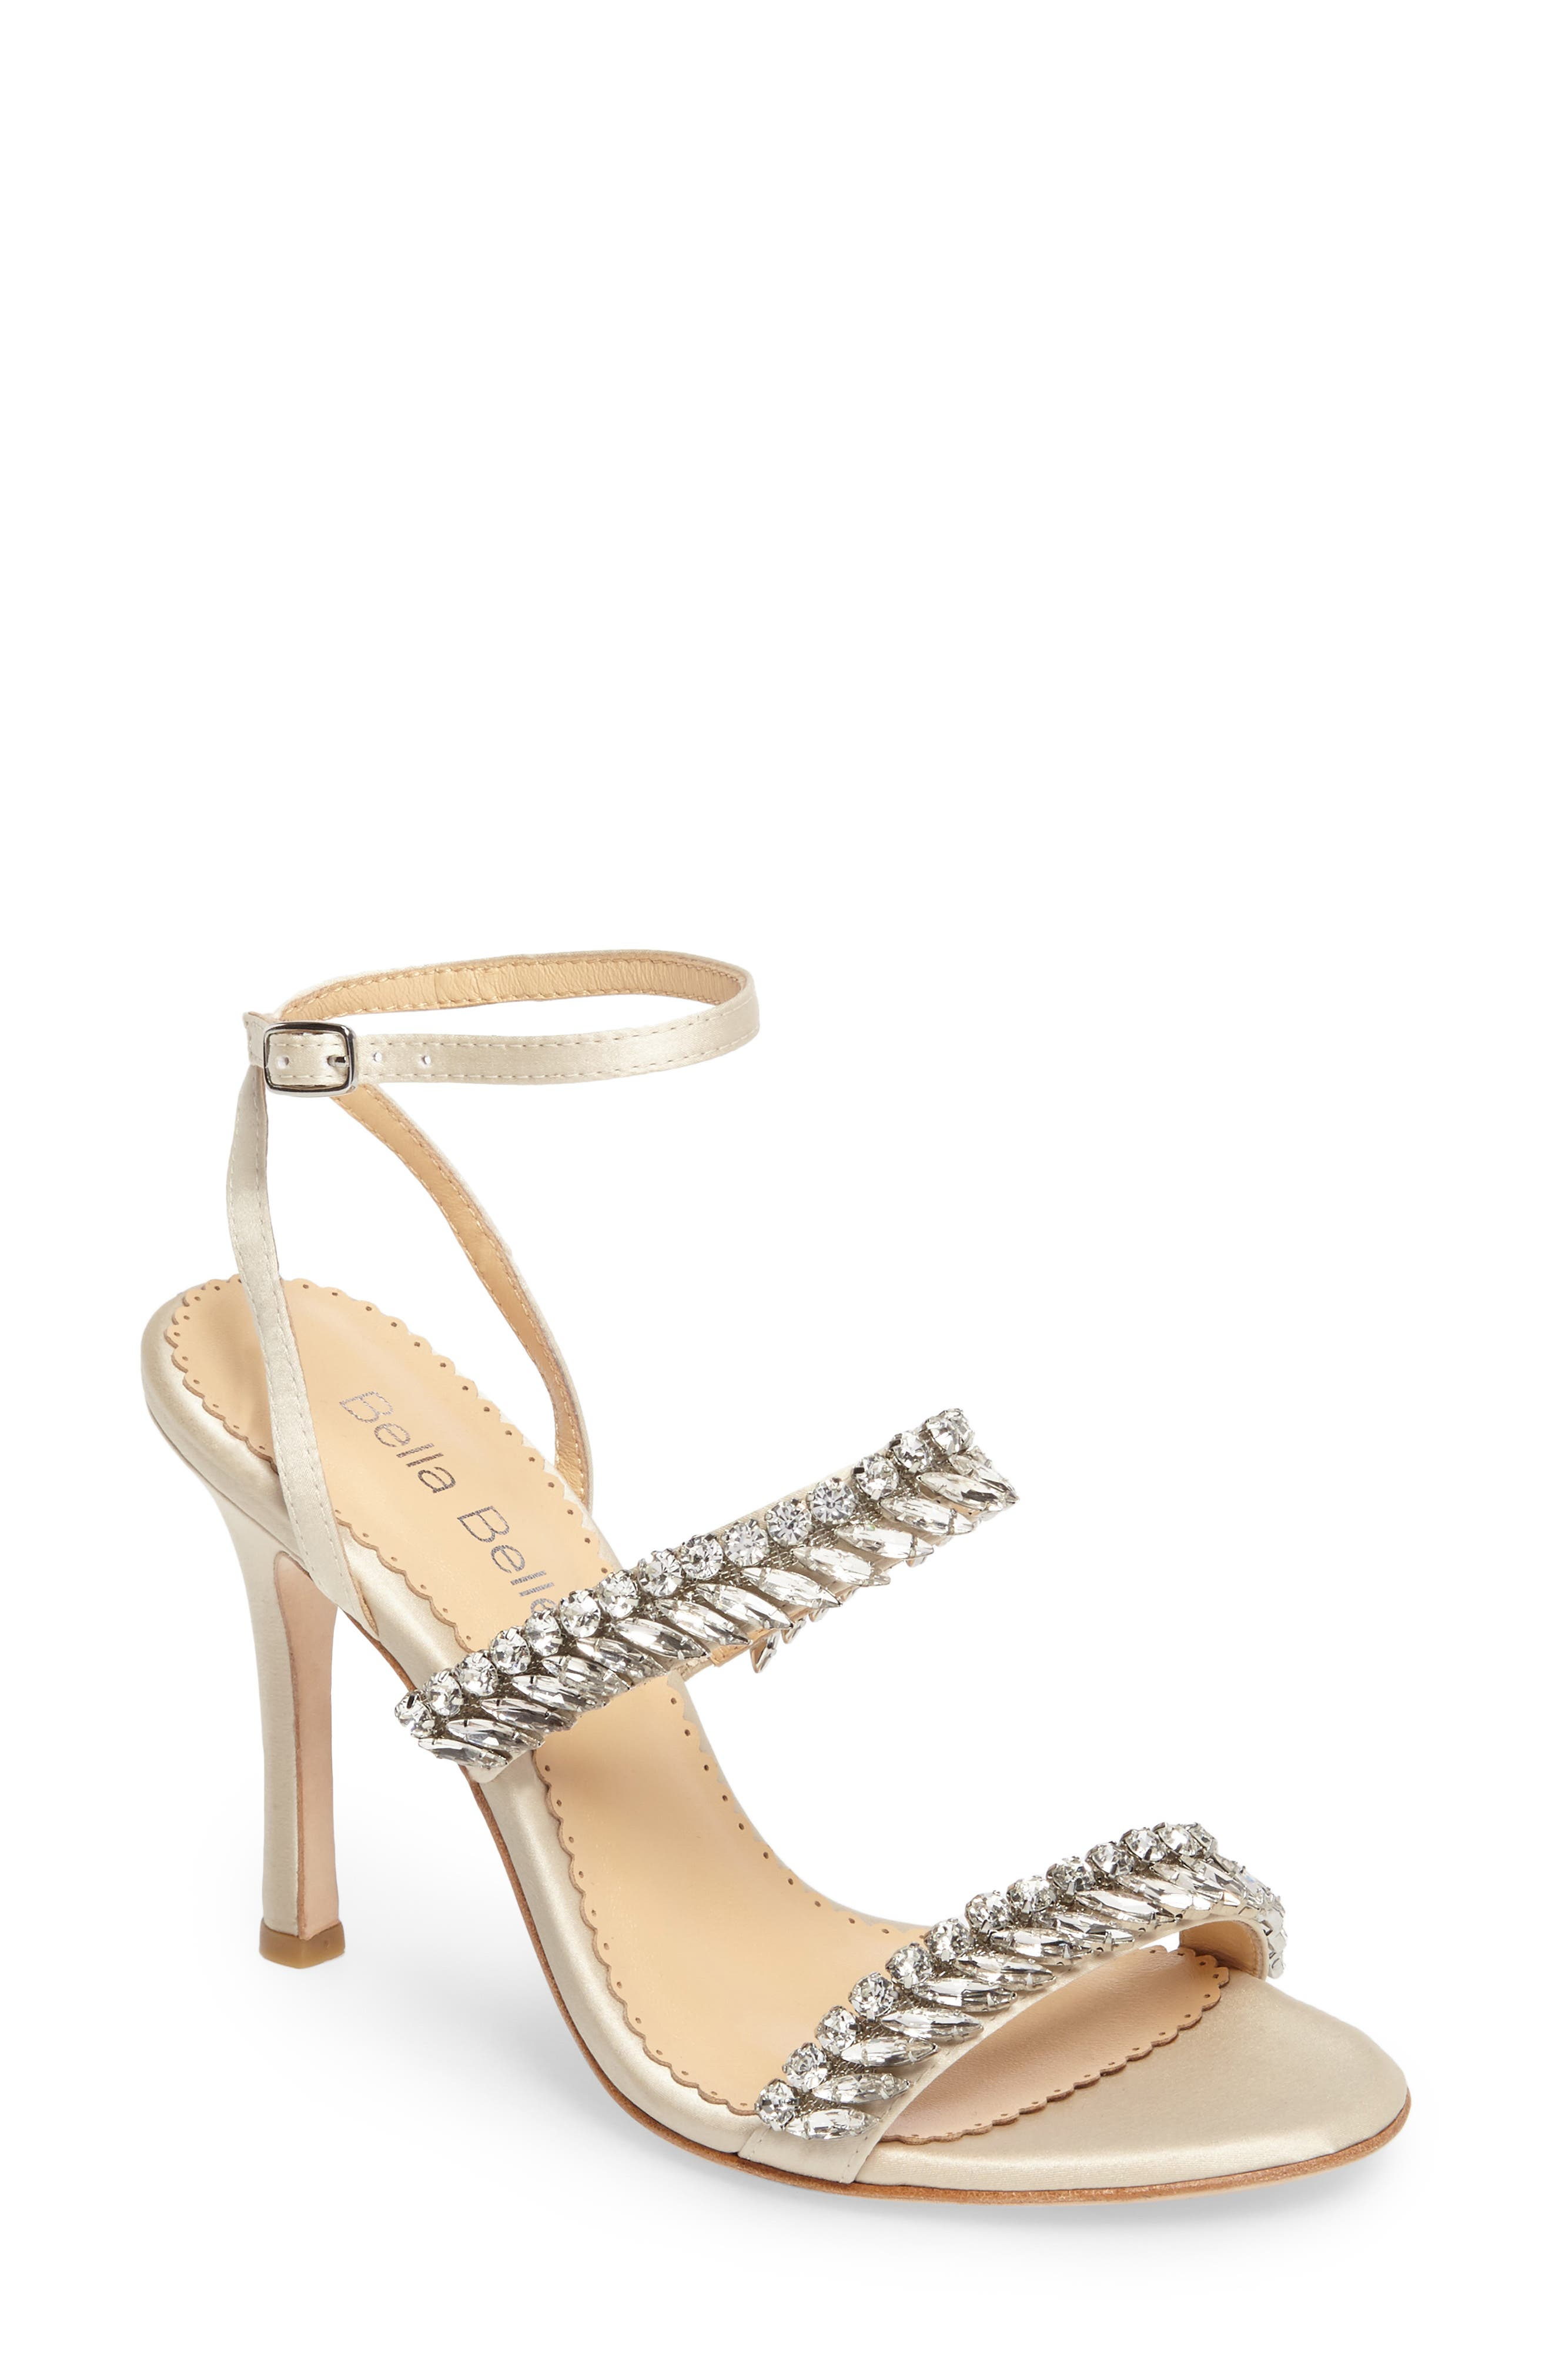 Belinda Embellished Sandal,                         Main,                         color, Champagne